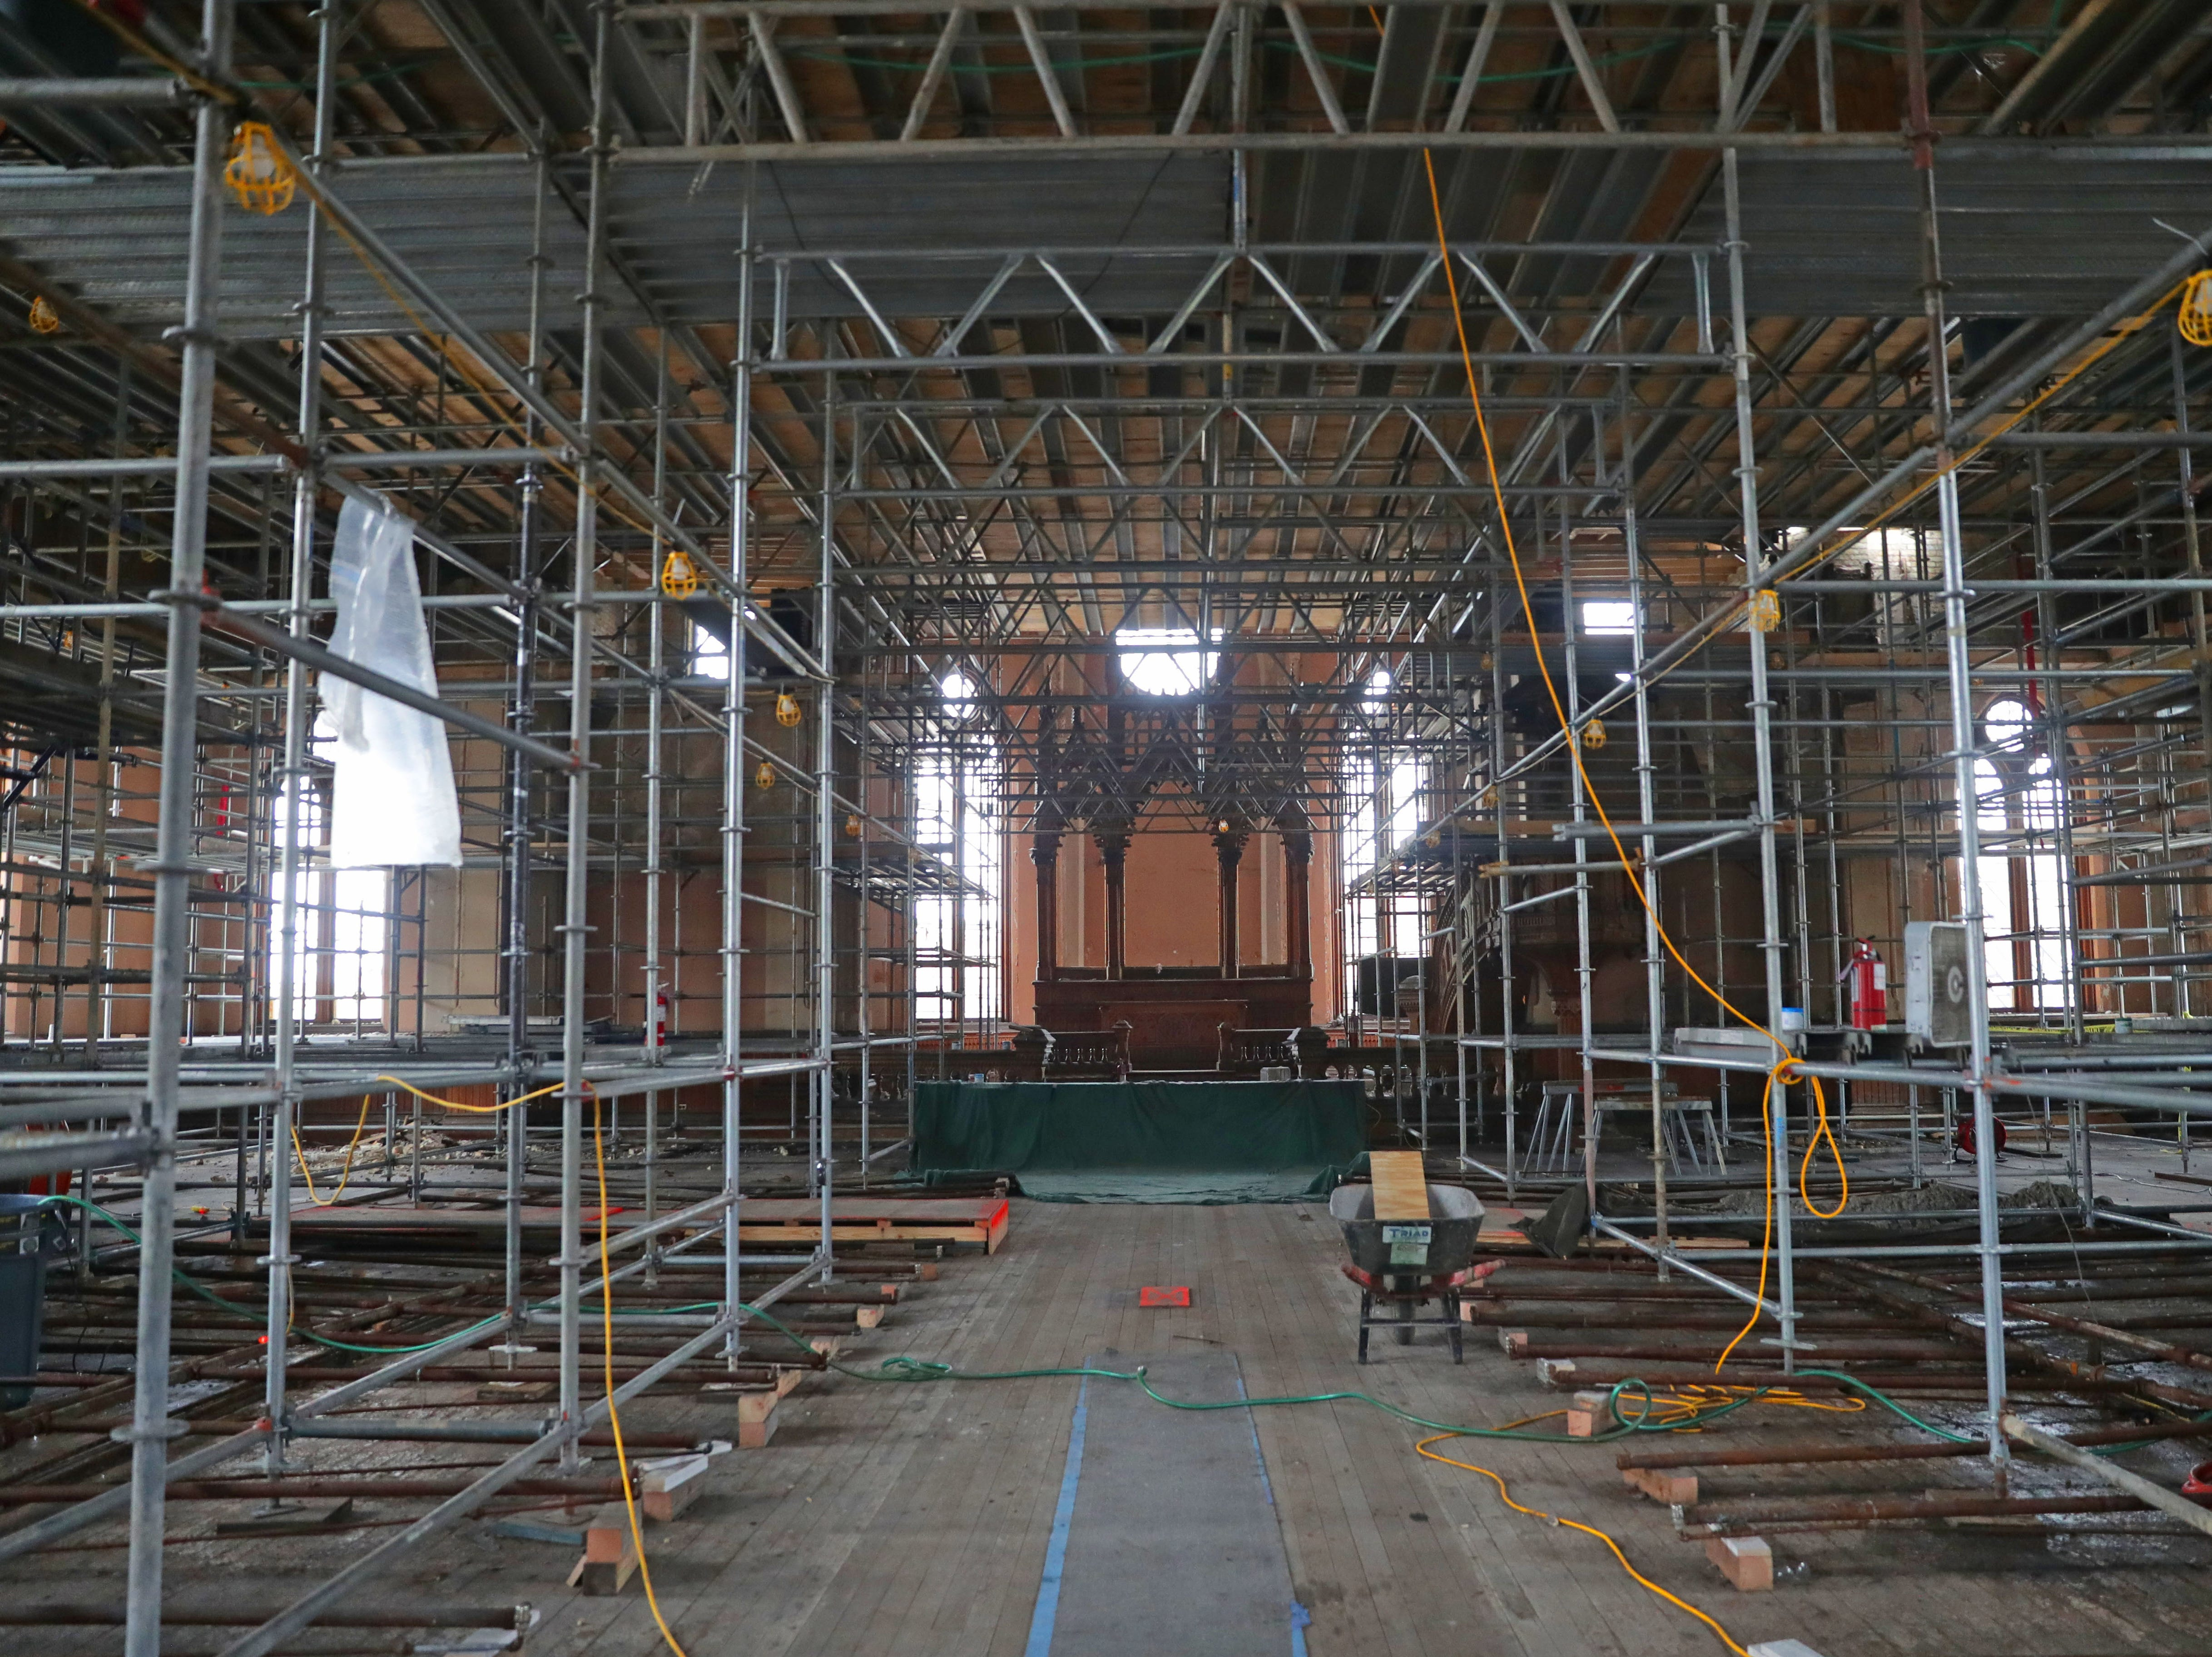 Scaffolding is in place in the chapel area at Trinity Evangelical Lutheran Church in Milwaukee. Work is being done to restore  the church near the corner of West Highland Avenue and North 9th Street after it was destroyed by fire in May of 2018.